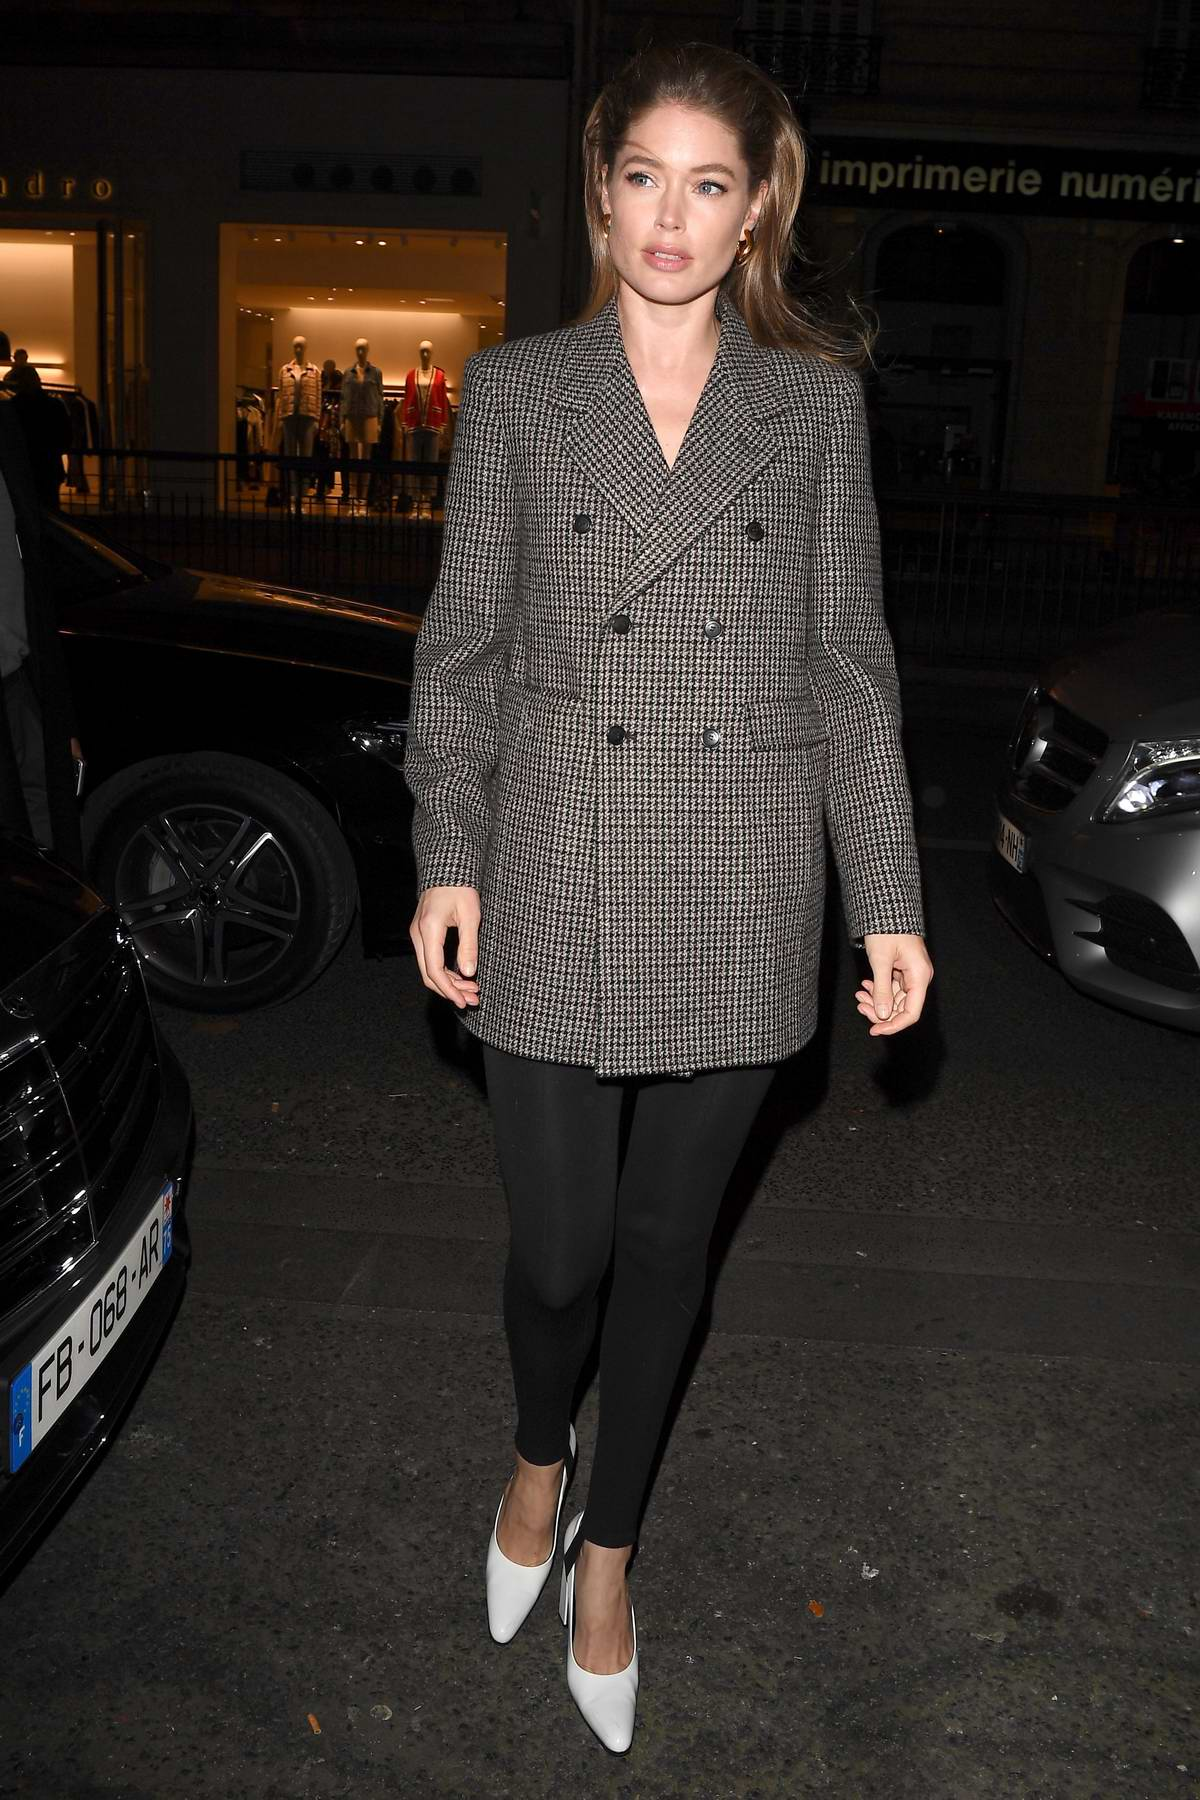 Doutzen Kroes steps out in a grey blazer and black leggings as she leaves her hotel in Paris, France